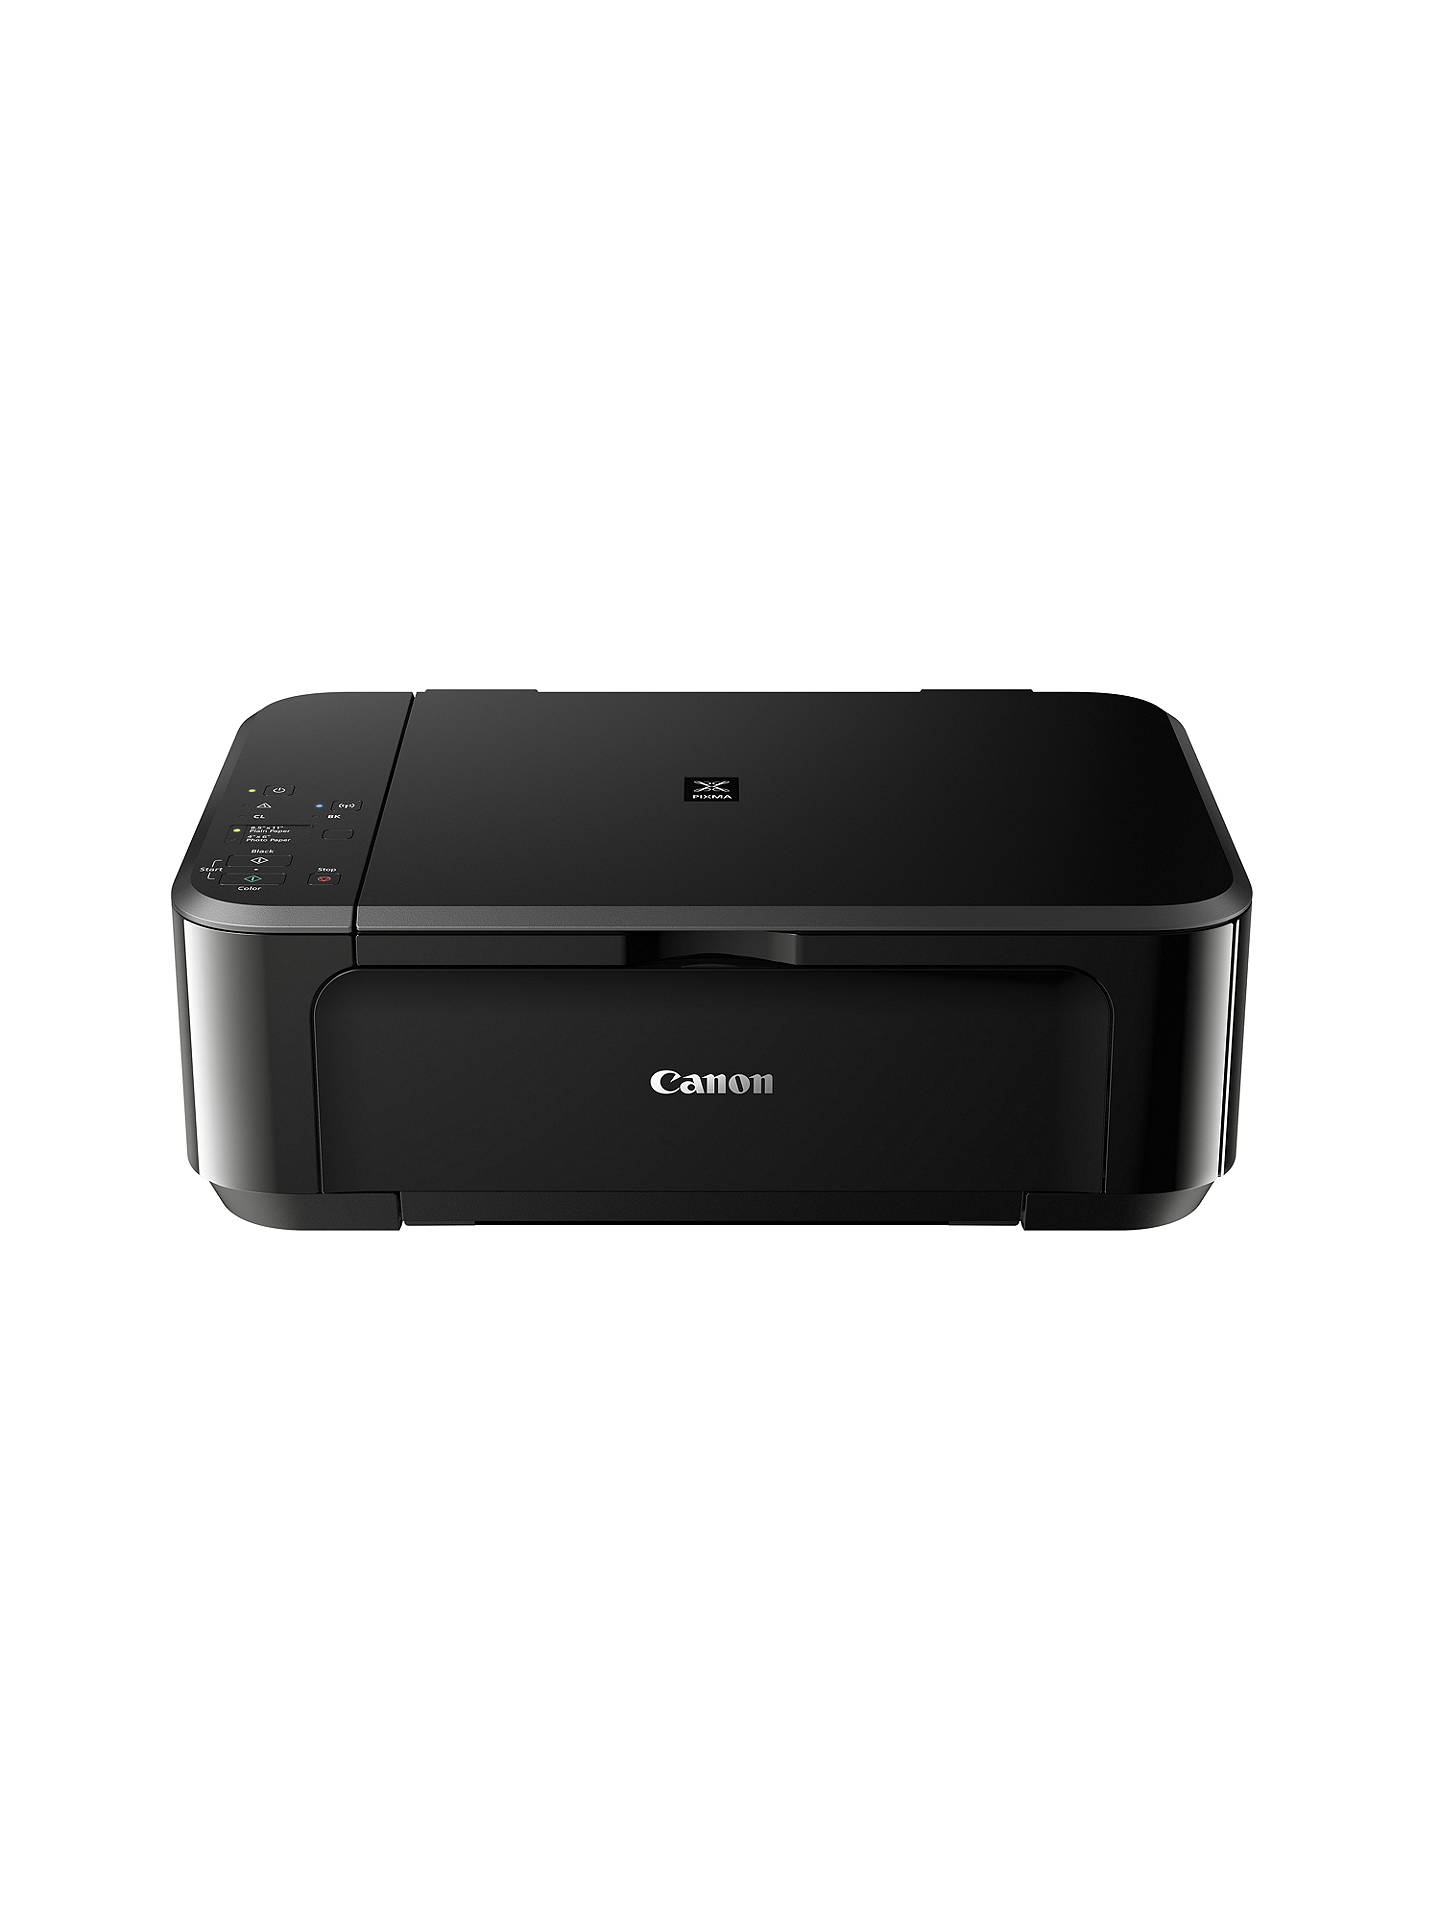 canon pixma mg3650 all in one wireless wi fi printer at john lewis partners. Black Bedroom Furniture Sets. Home Design Ideas